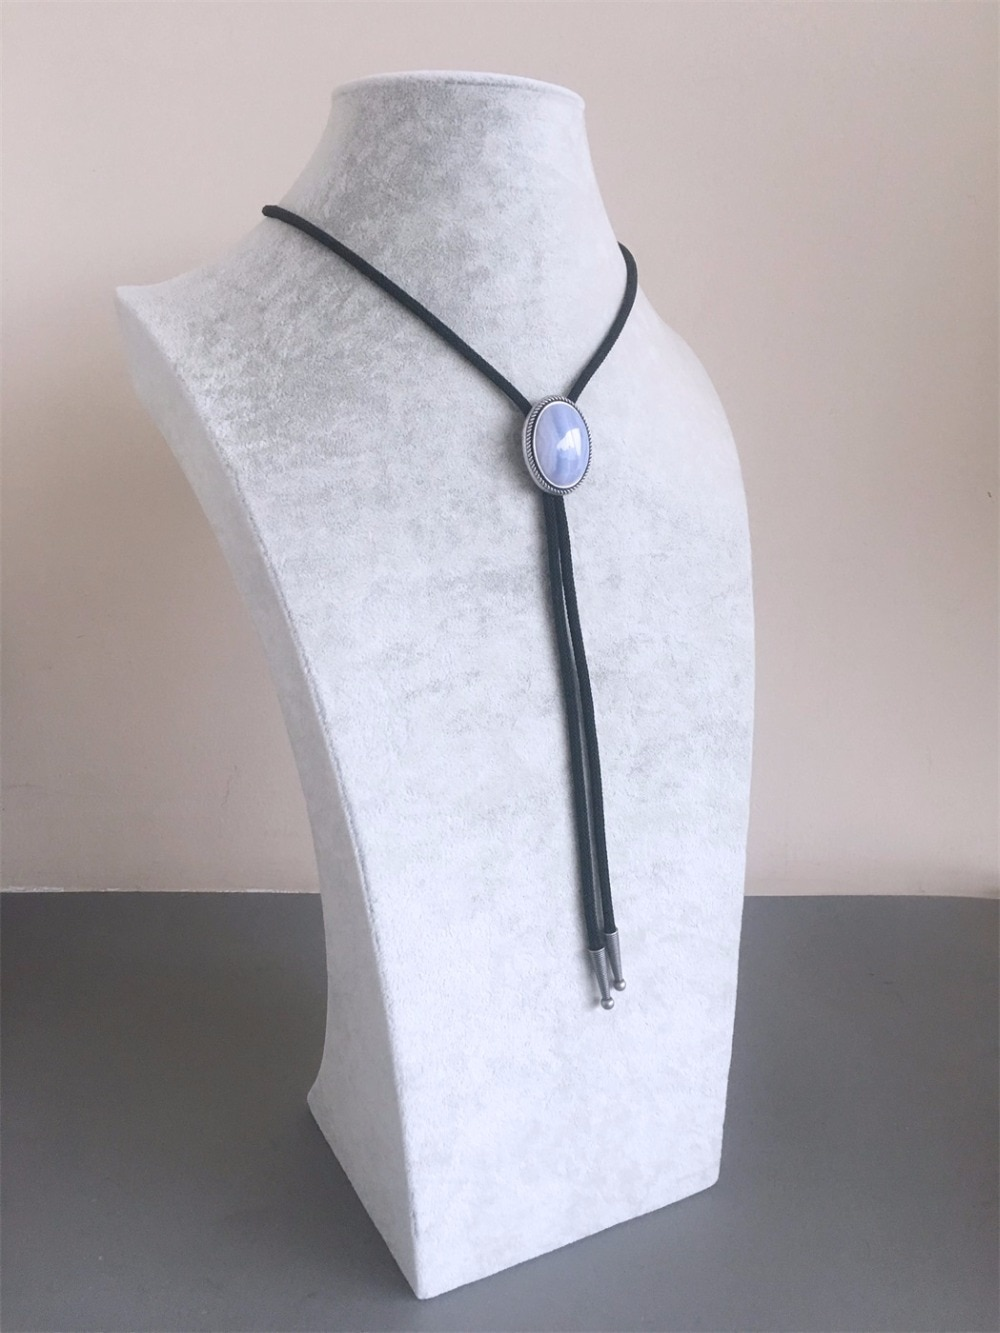 New Vintage Silver Plated Nature Blue Ripple Agate Stone Bolo Tie Each Nature Stone is Different BOLOTIE-014